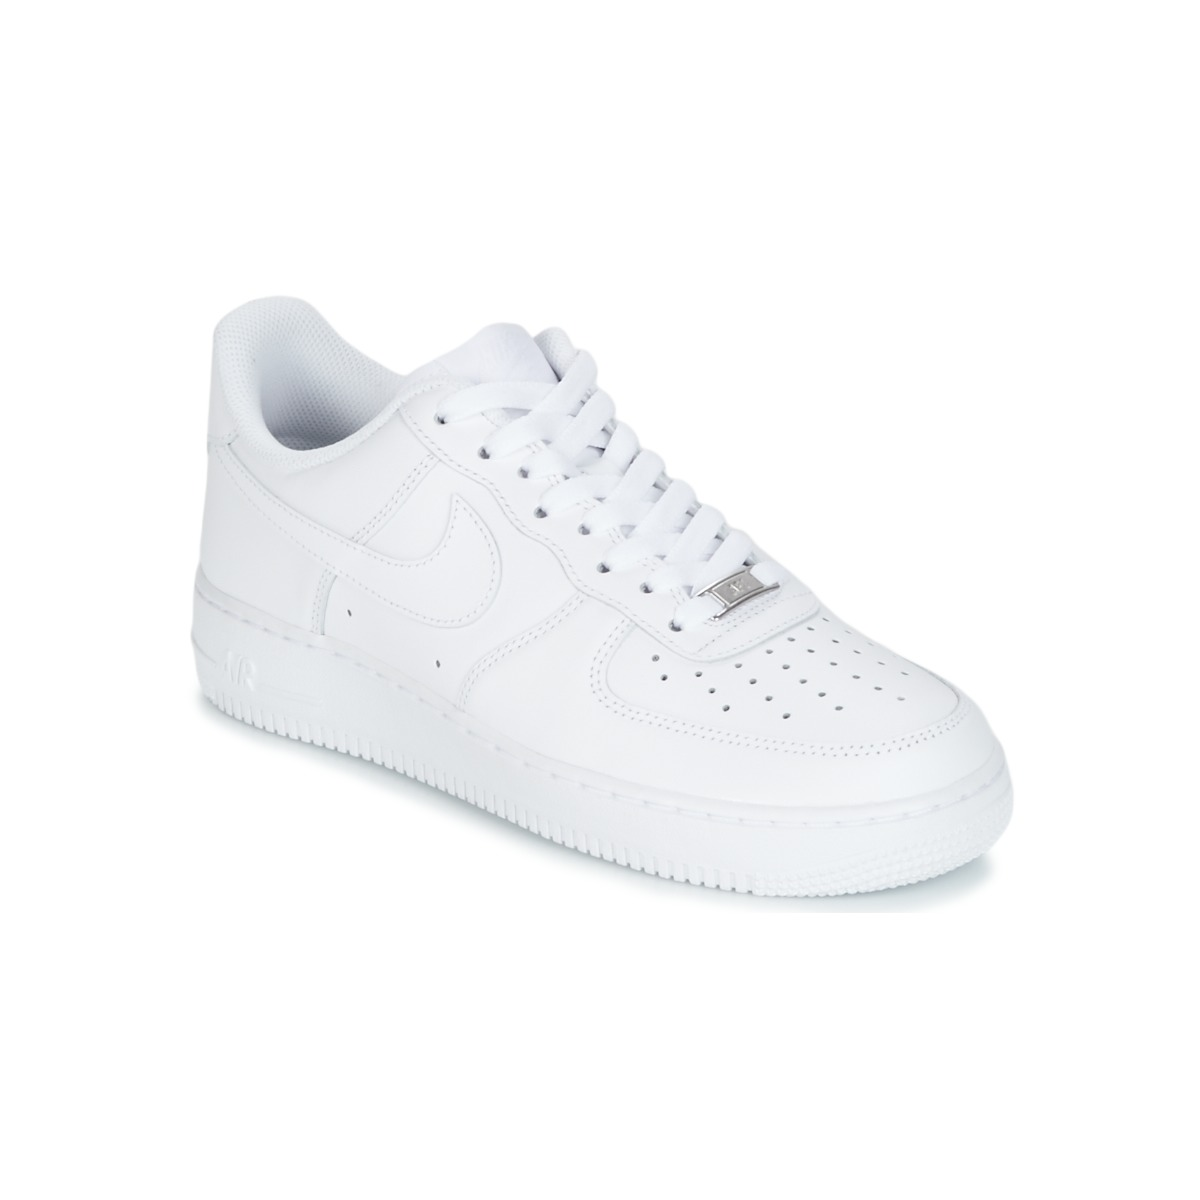 b31fb82d8 Nike AIR FORCE 1 07 White - Free delivery | Spartoo NET ! - Shoes ...